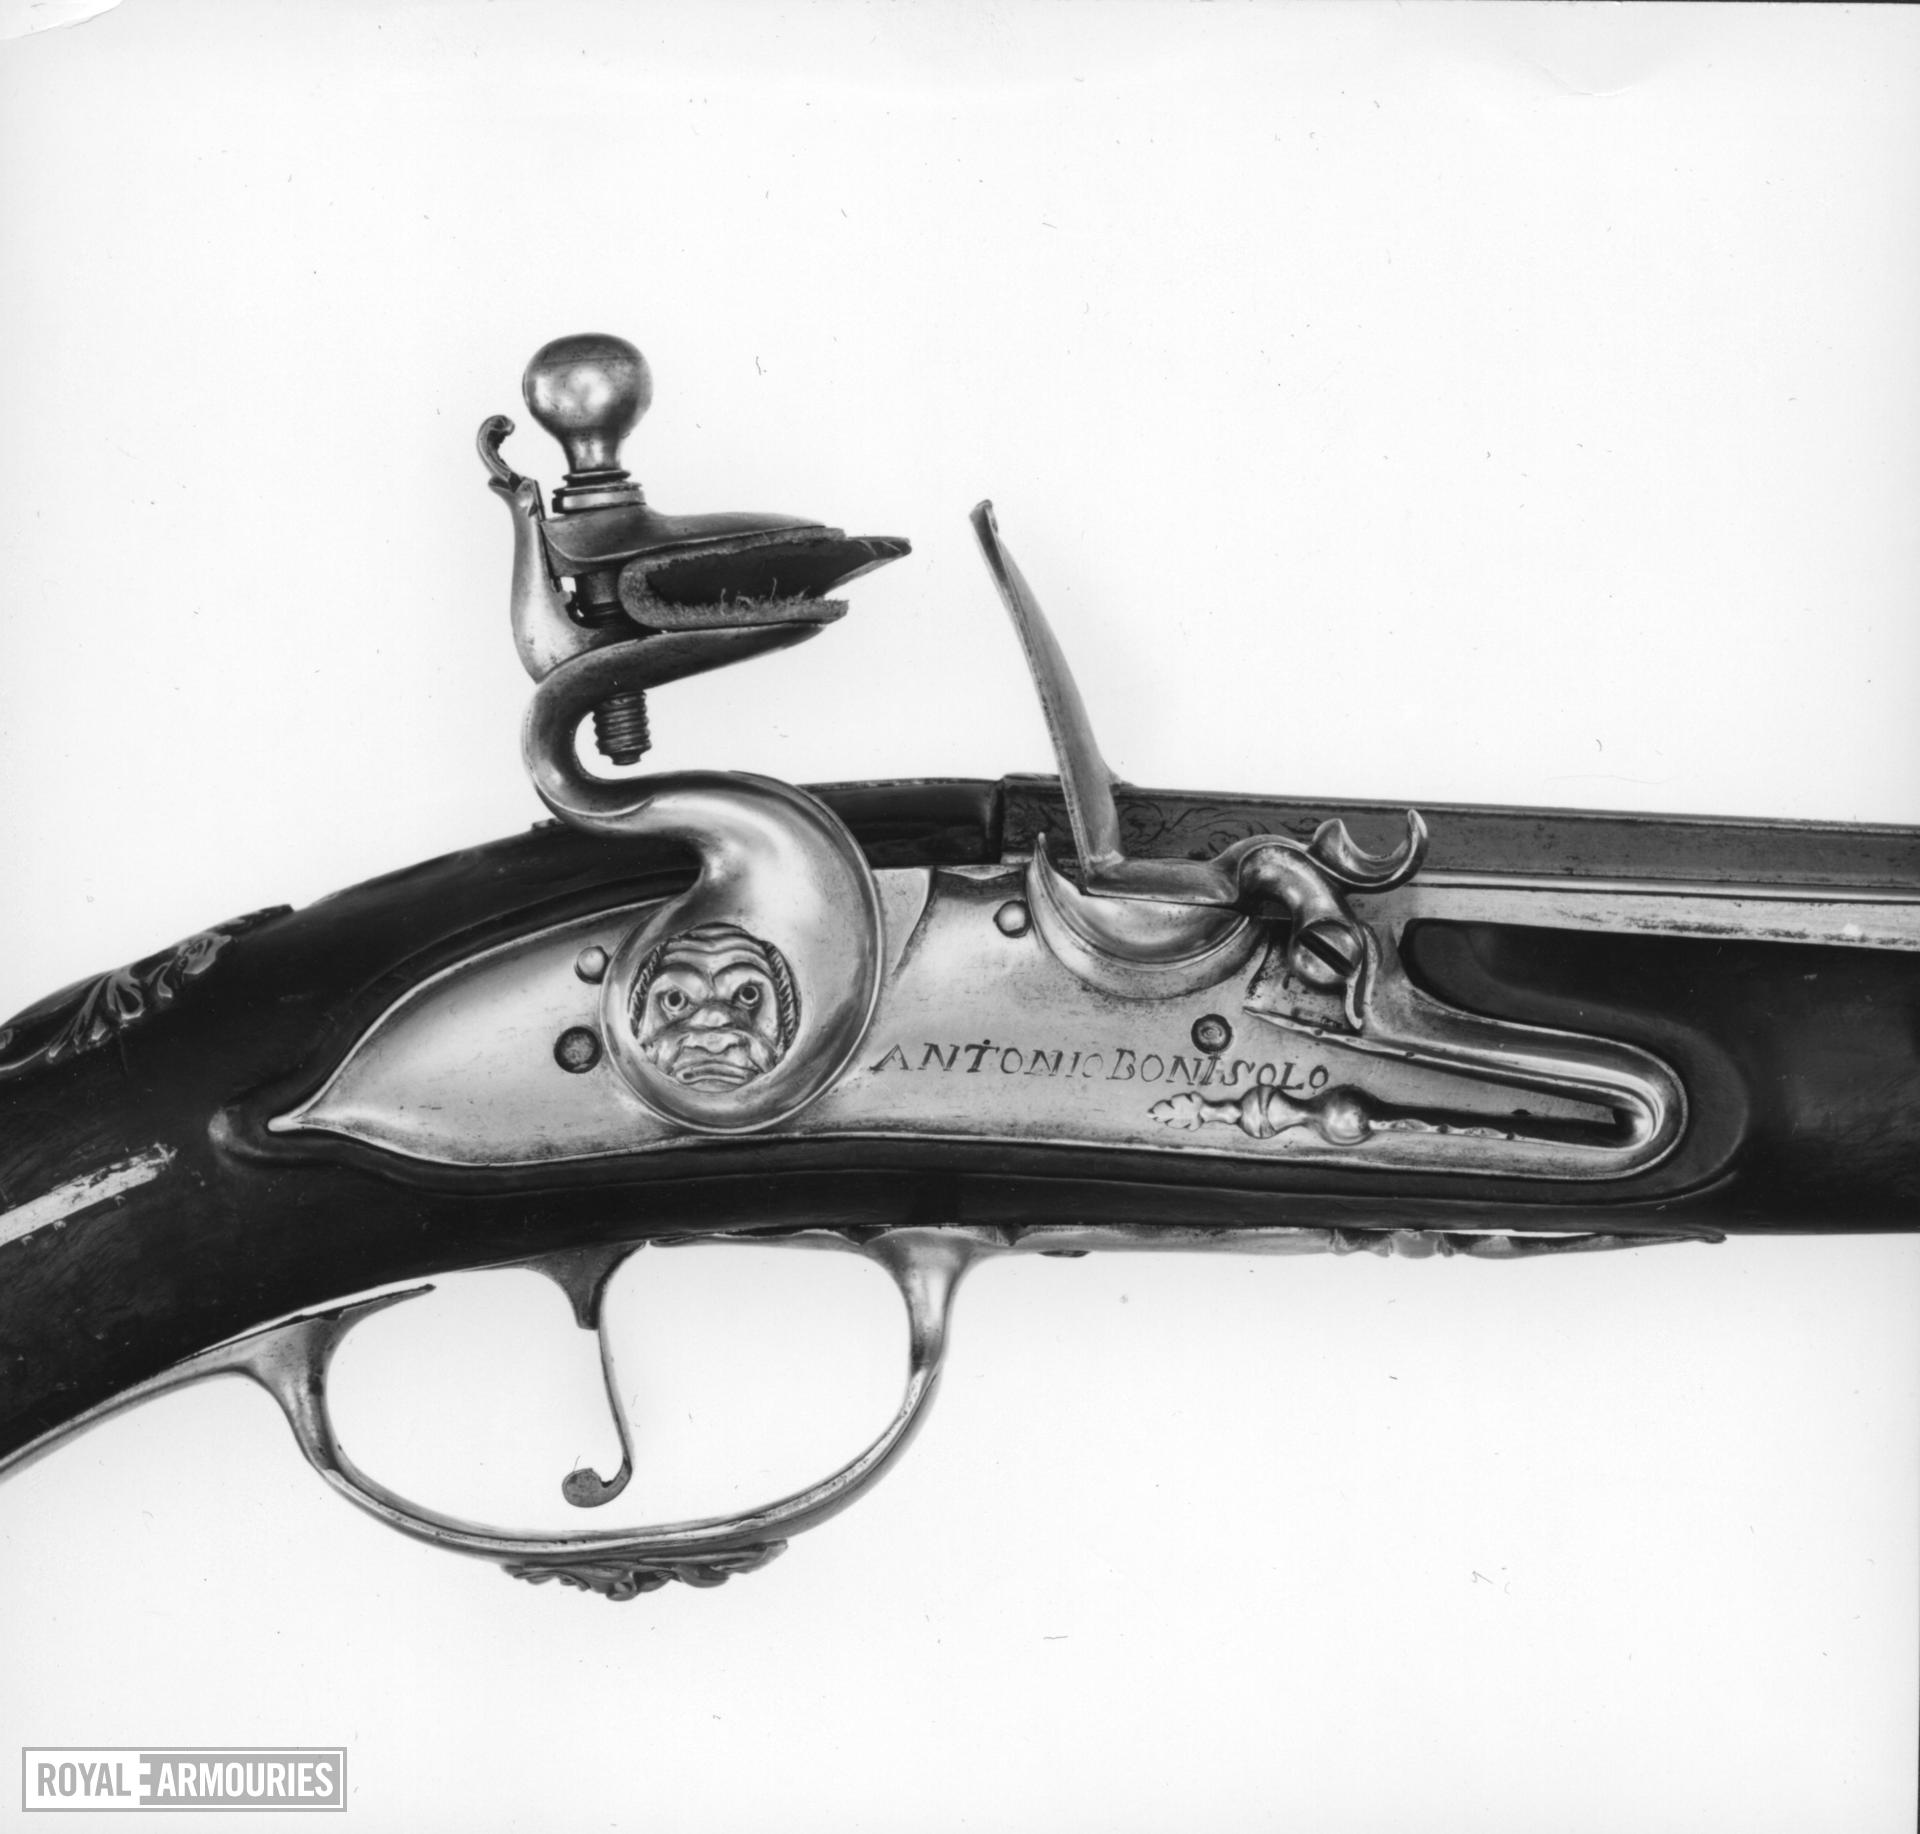 Flintlock holster pistol